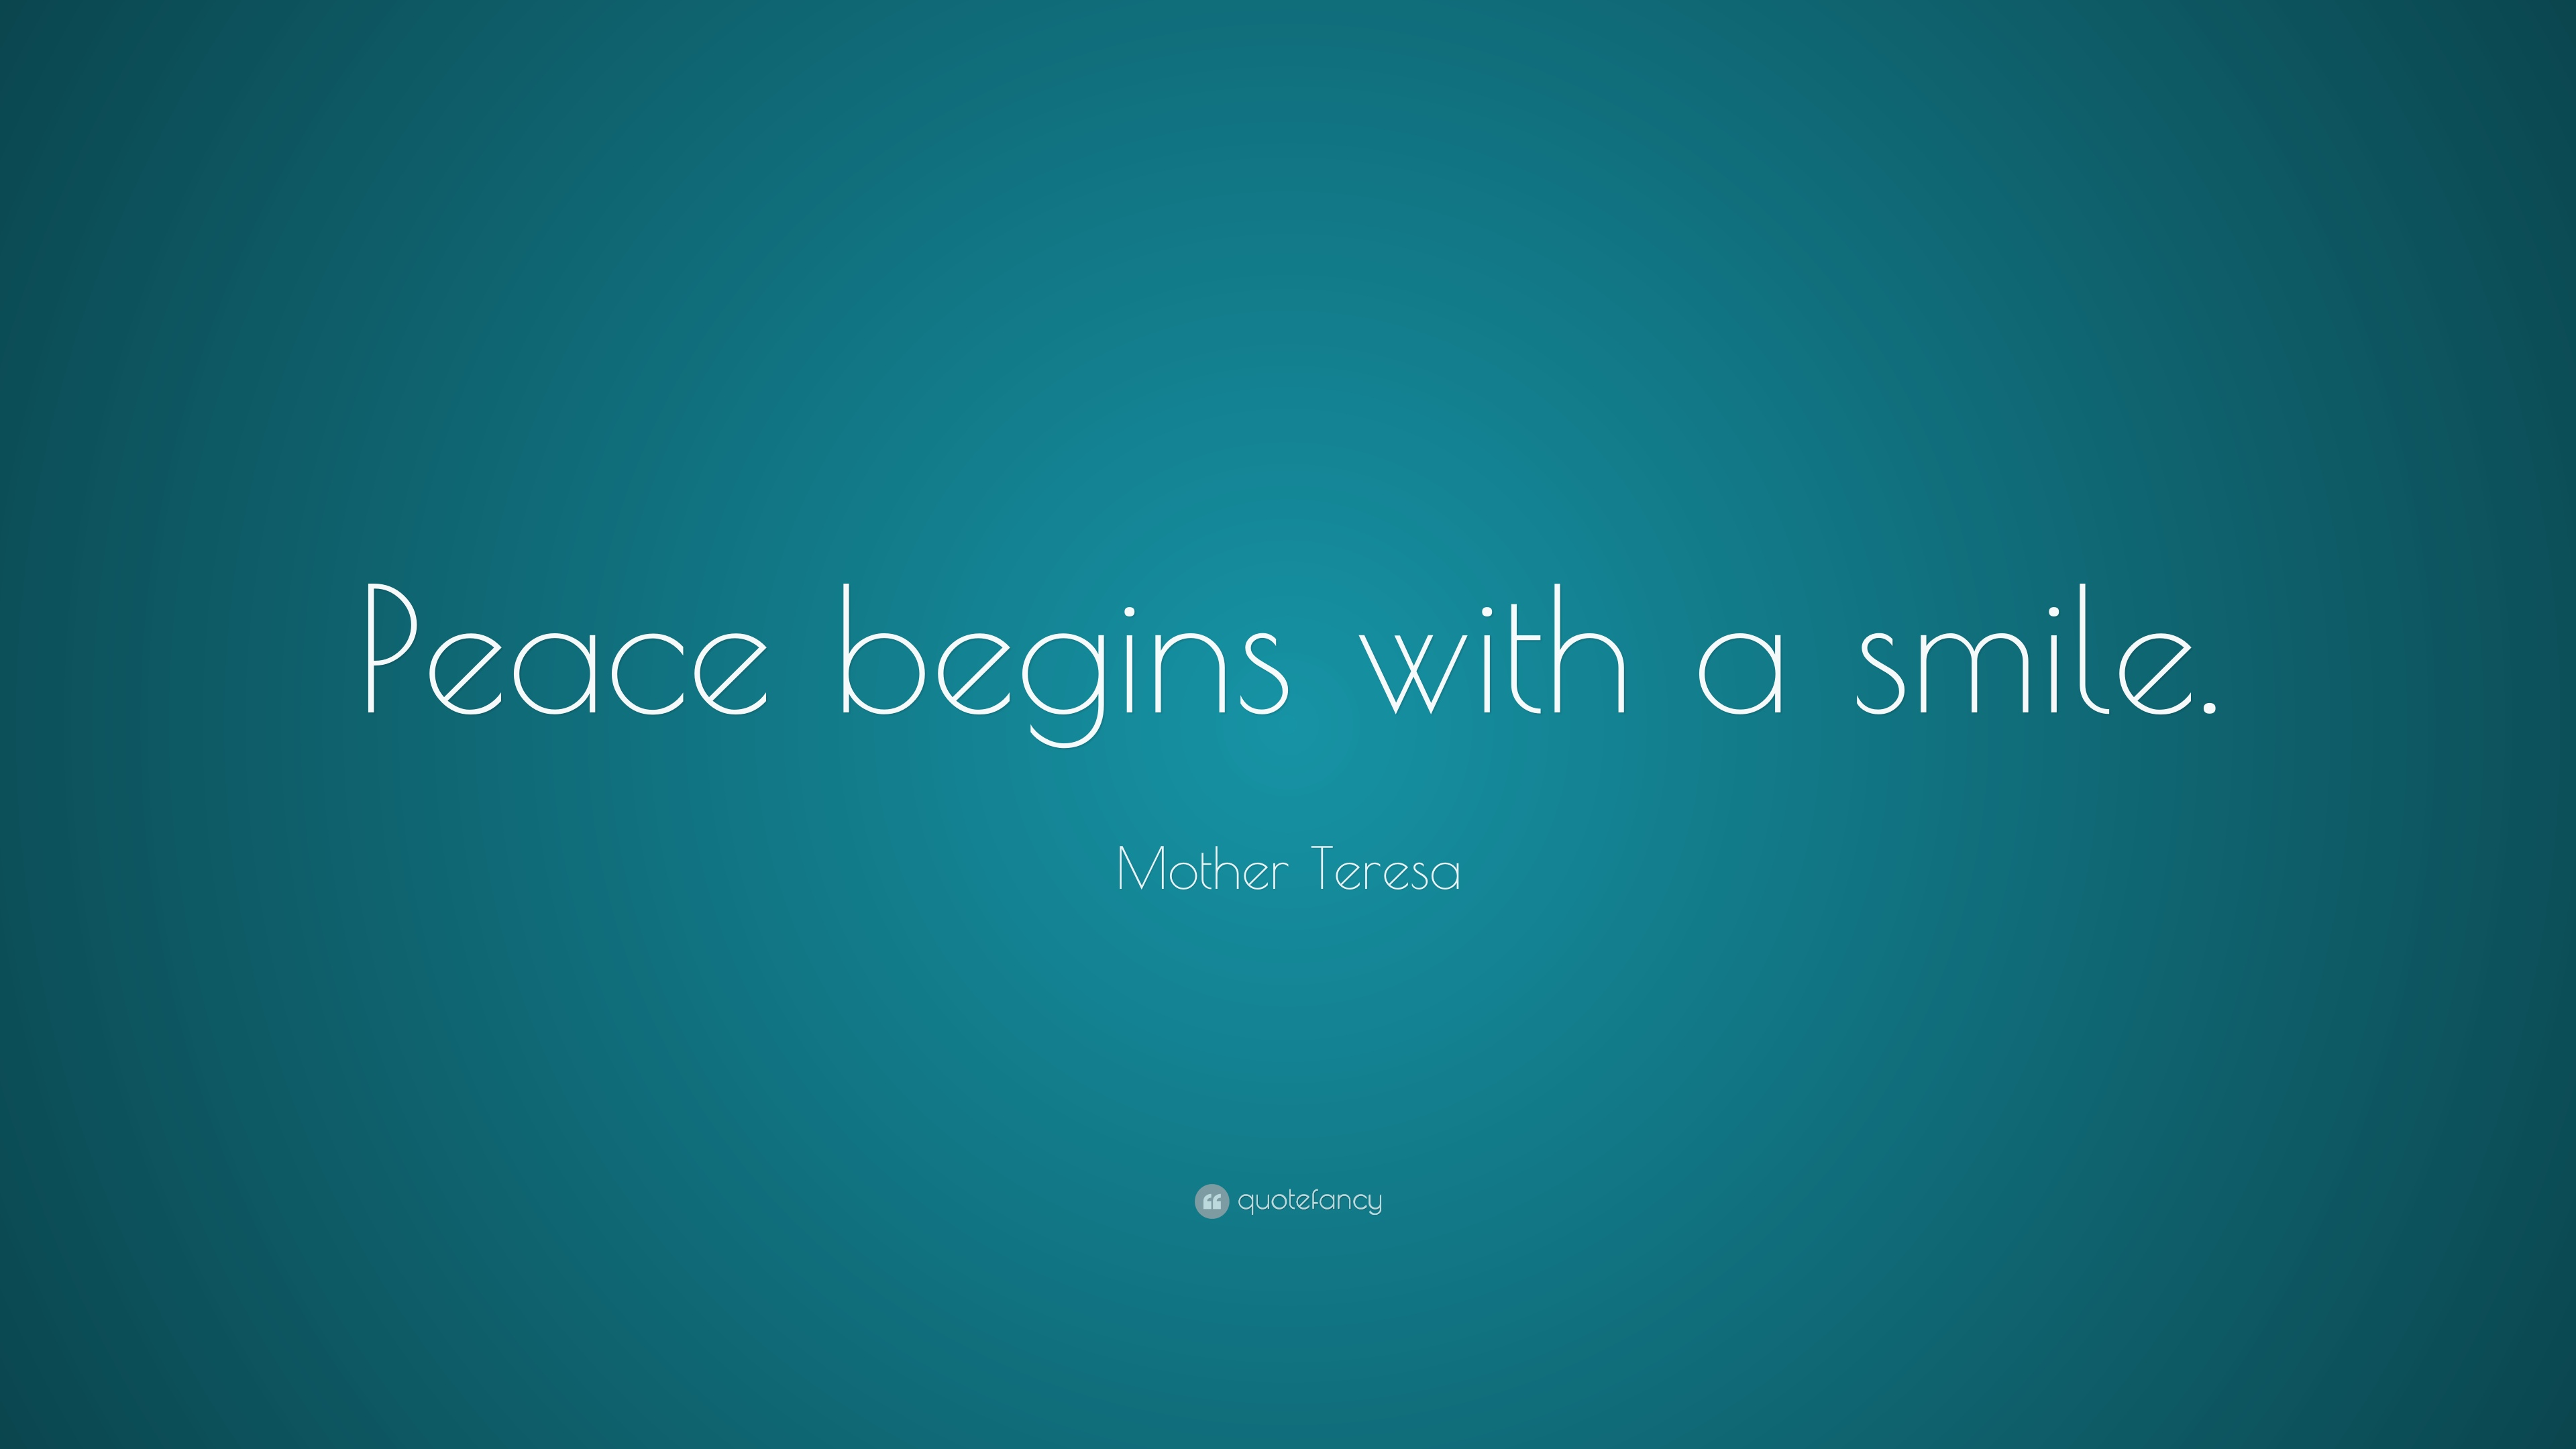 mother teresa quote peace begins with a smile 15